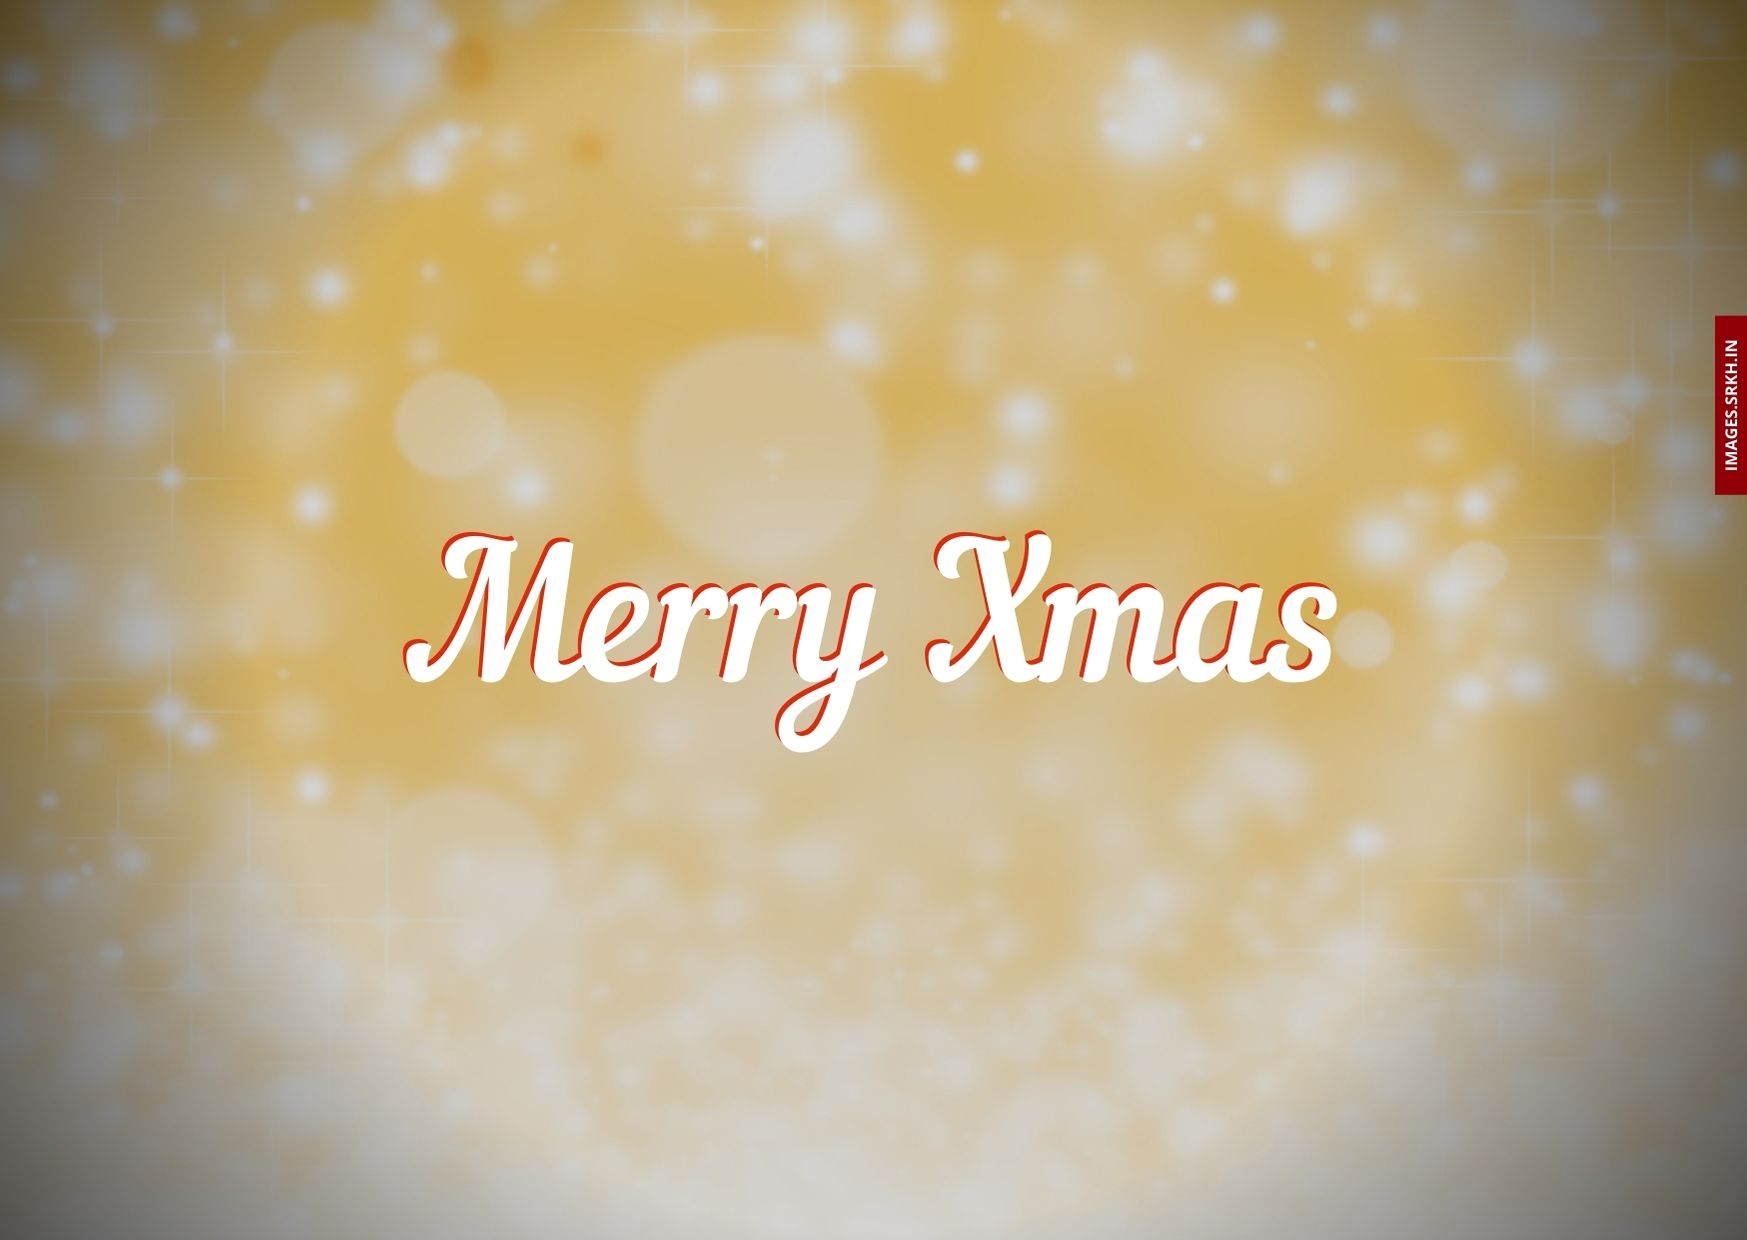 Xmas Star Images full HD free download.